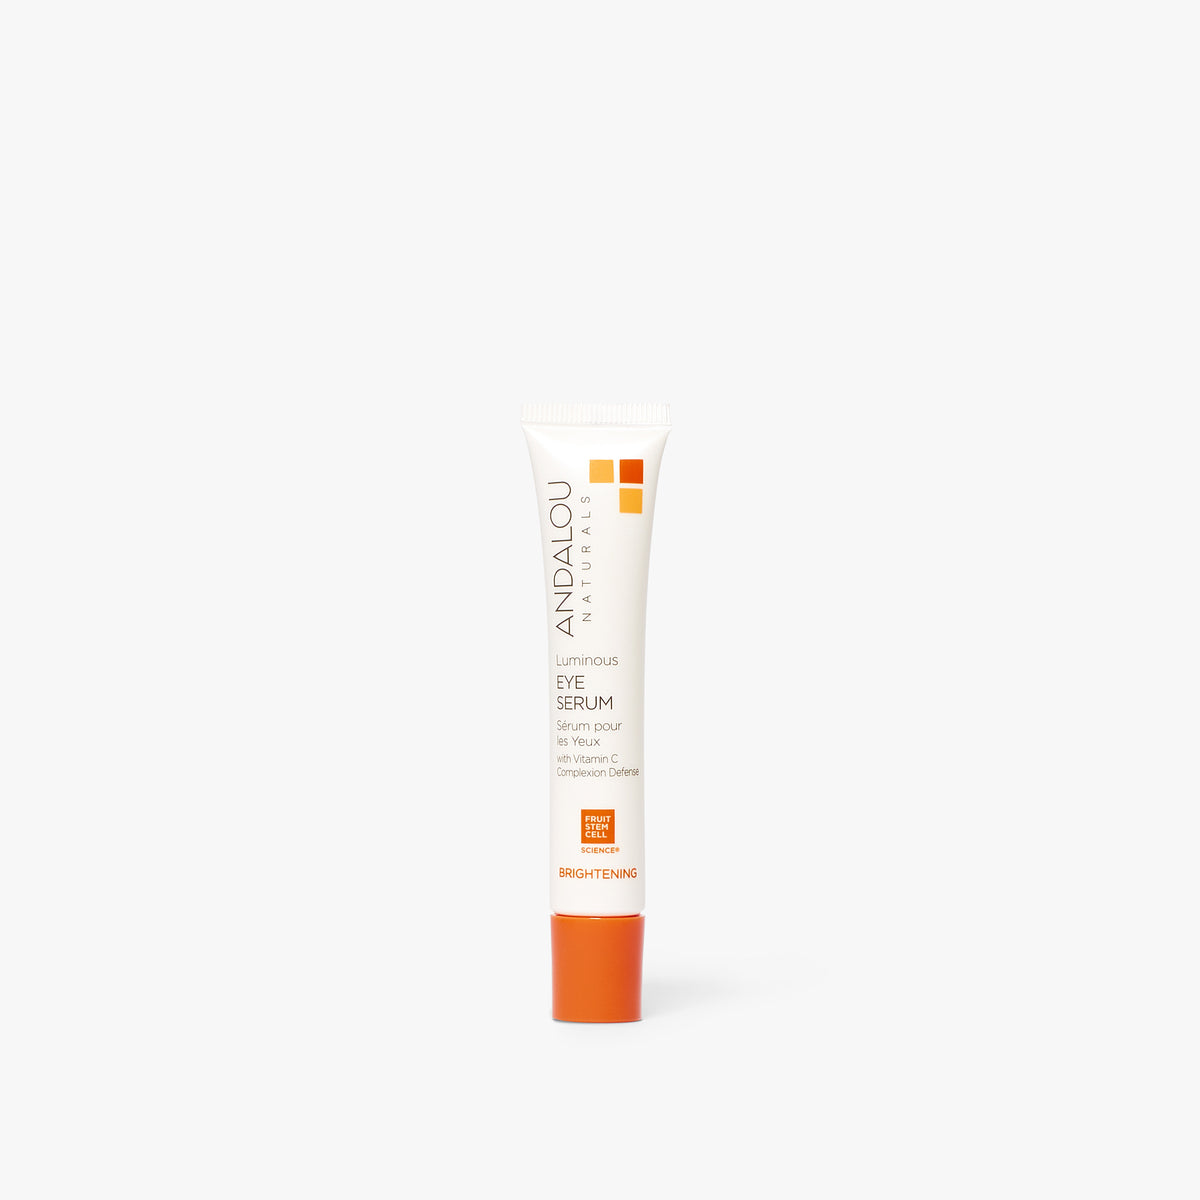 Brightening Luminous Eye Serum